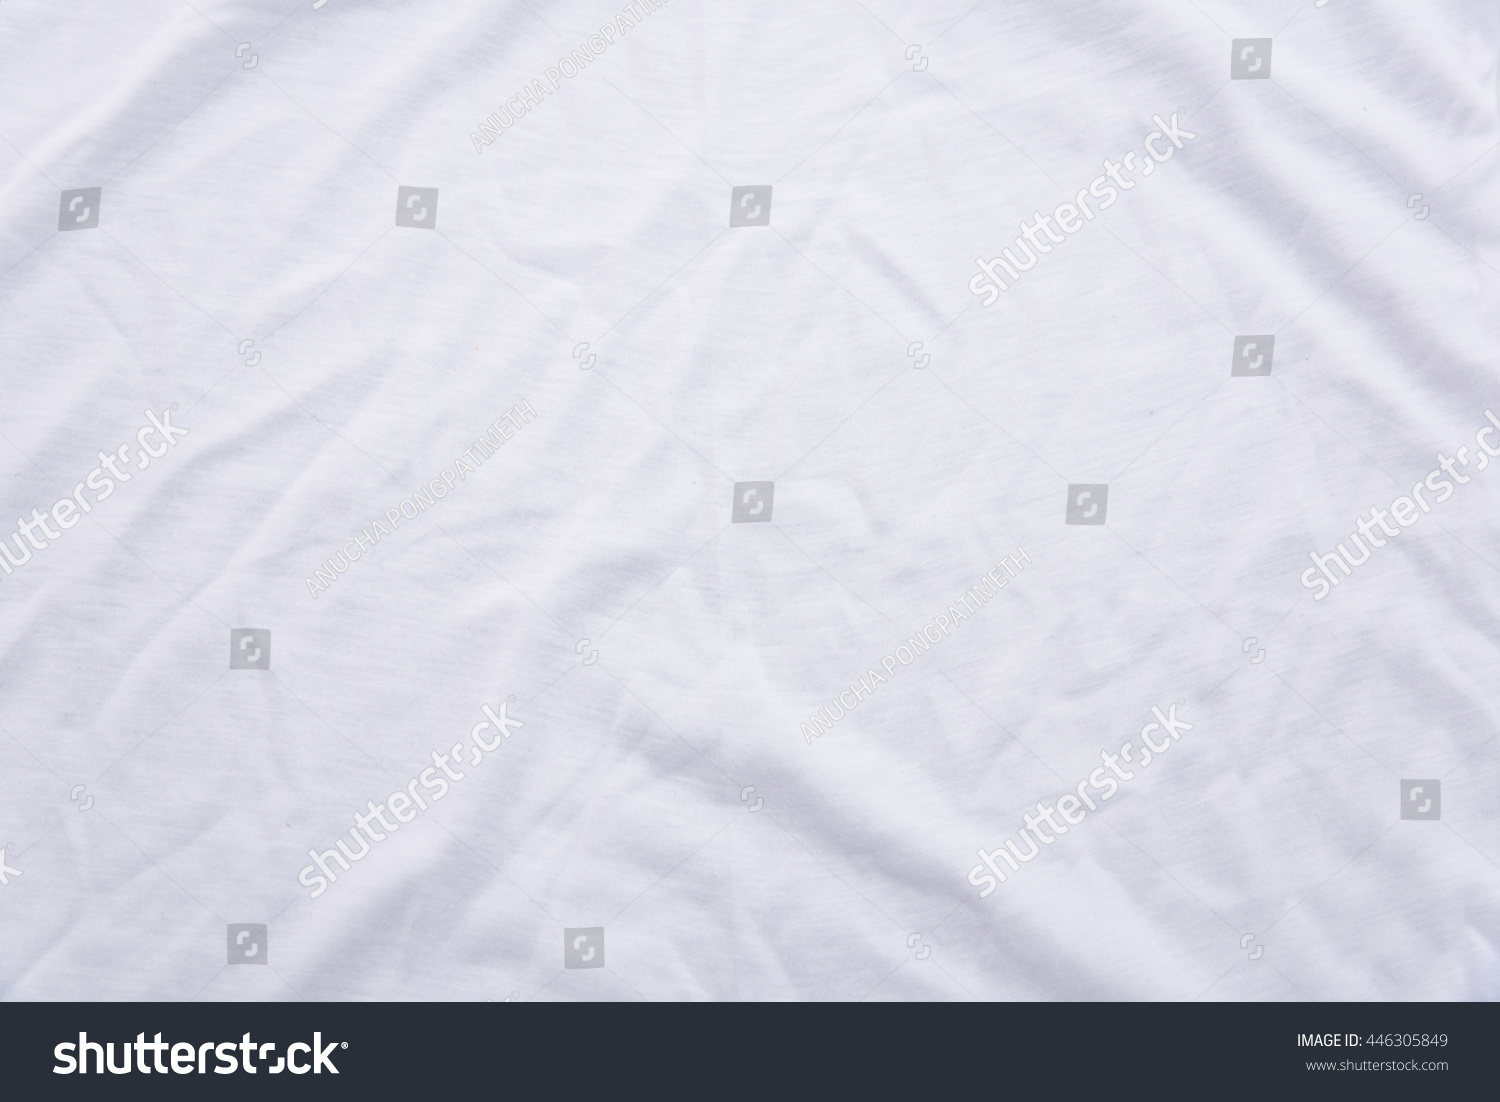 white bed sheet texture. Close Up Of Wrinkled White Color Fabric Bed Sheet Texture Background. D